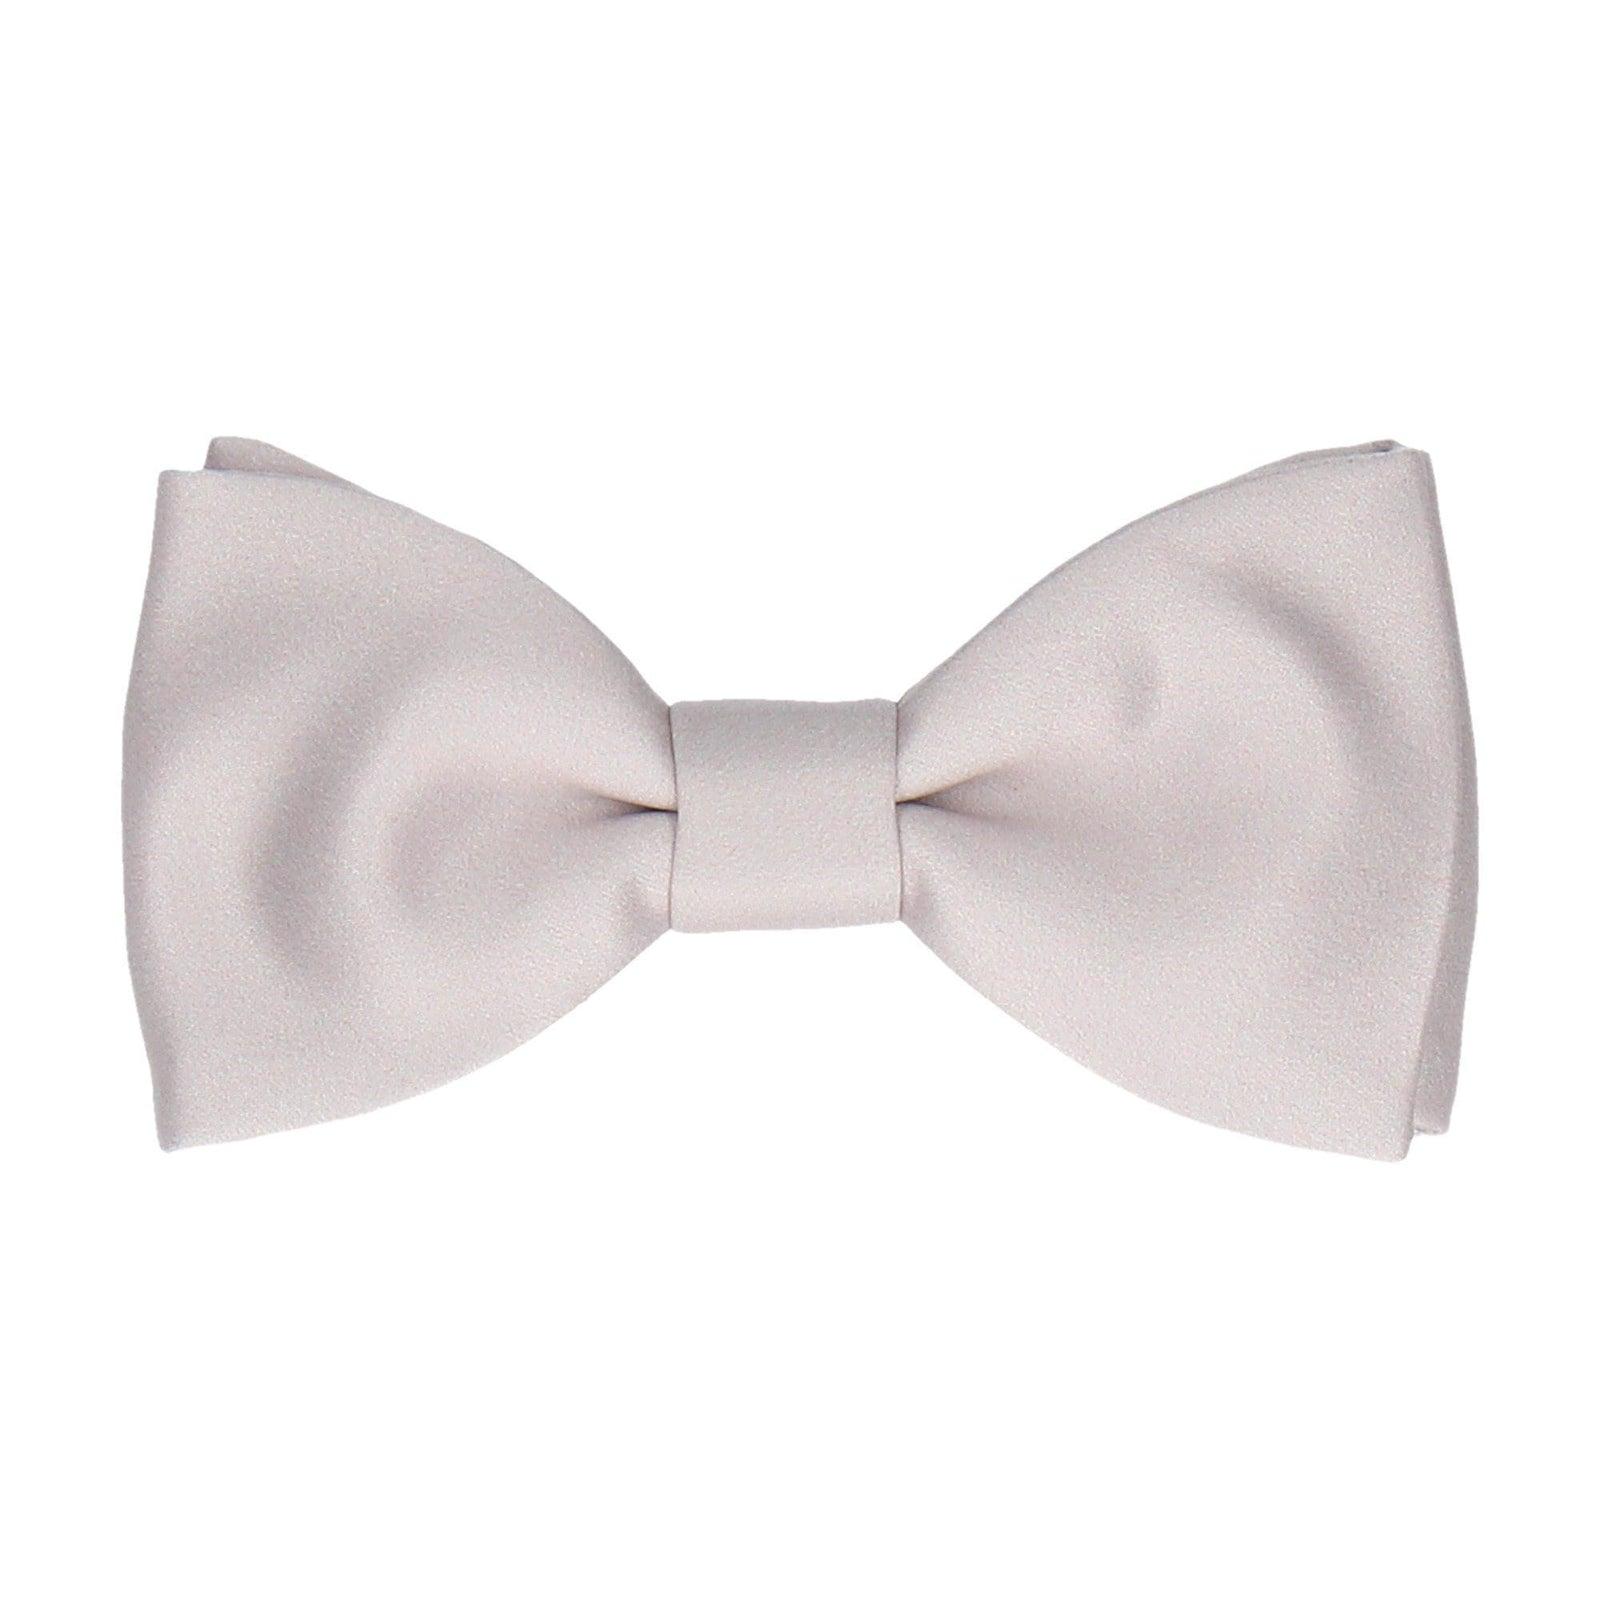 Plain Solid Pure Silver Bow Tie